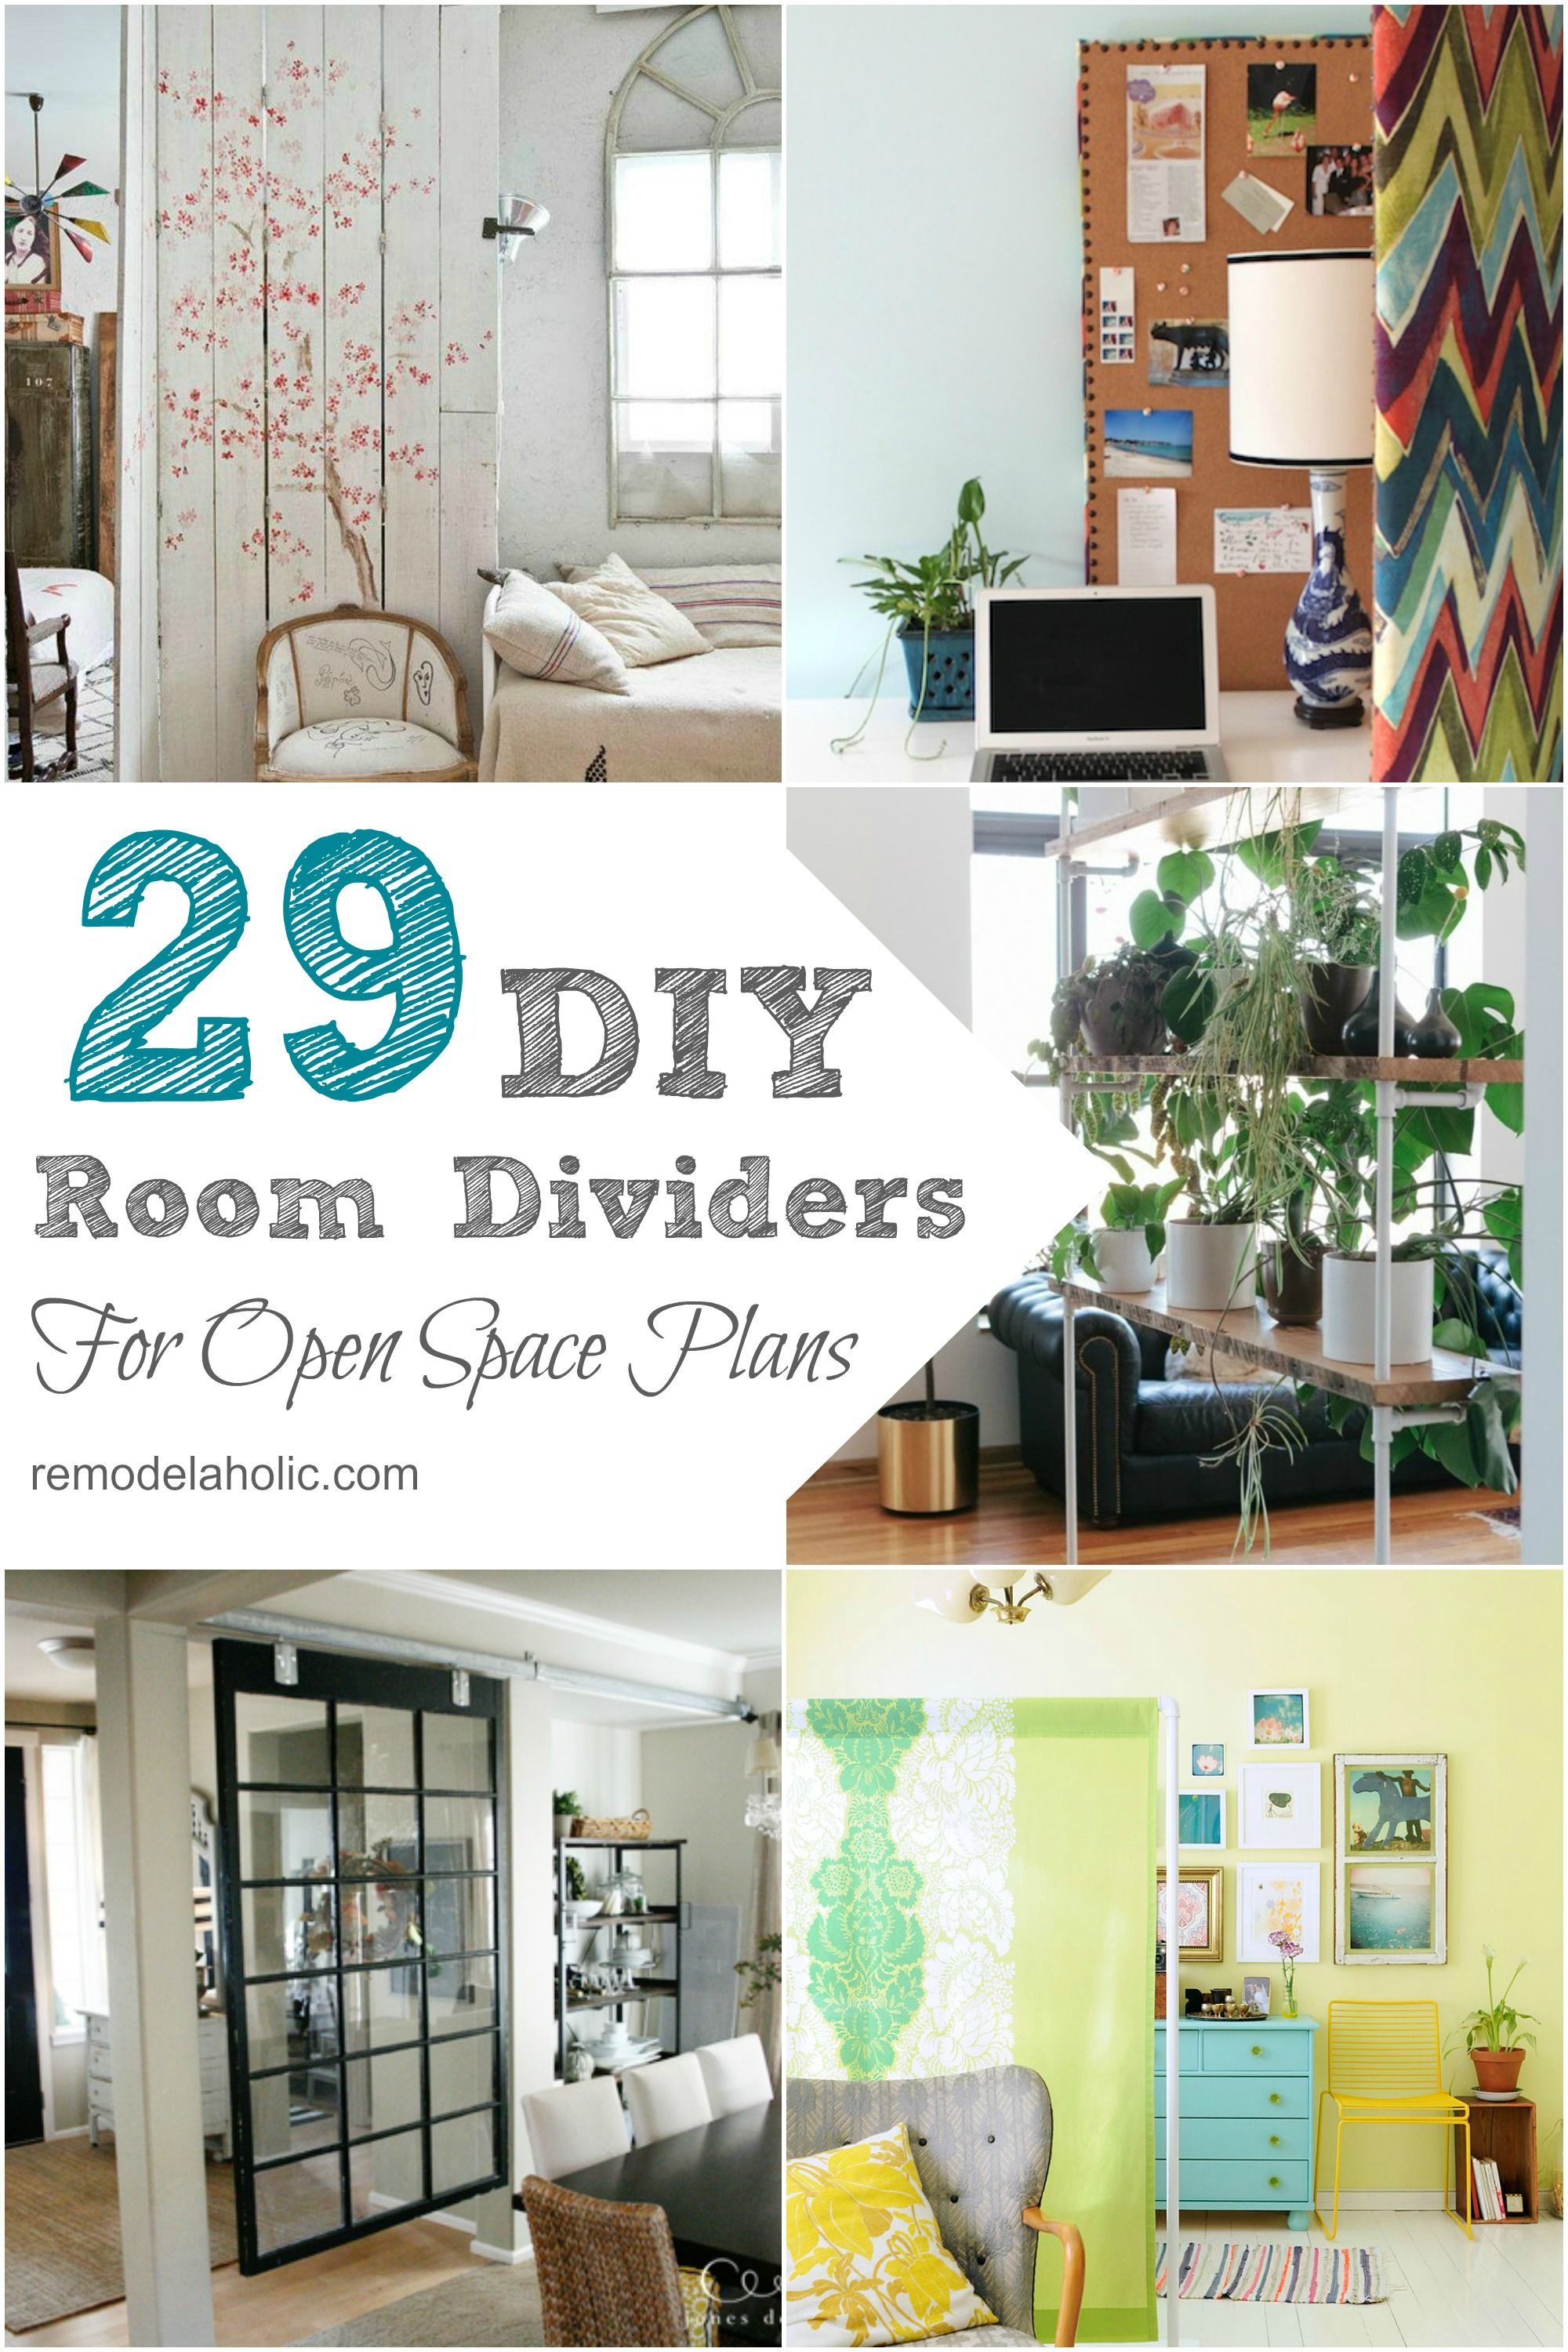 29 creative diy room dividers for open space plans | diy room